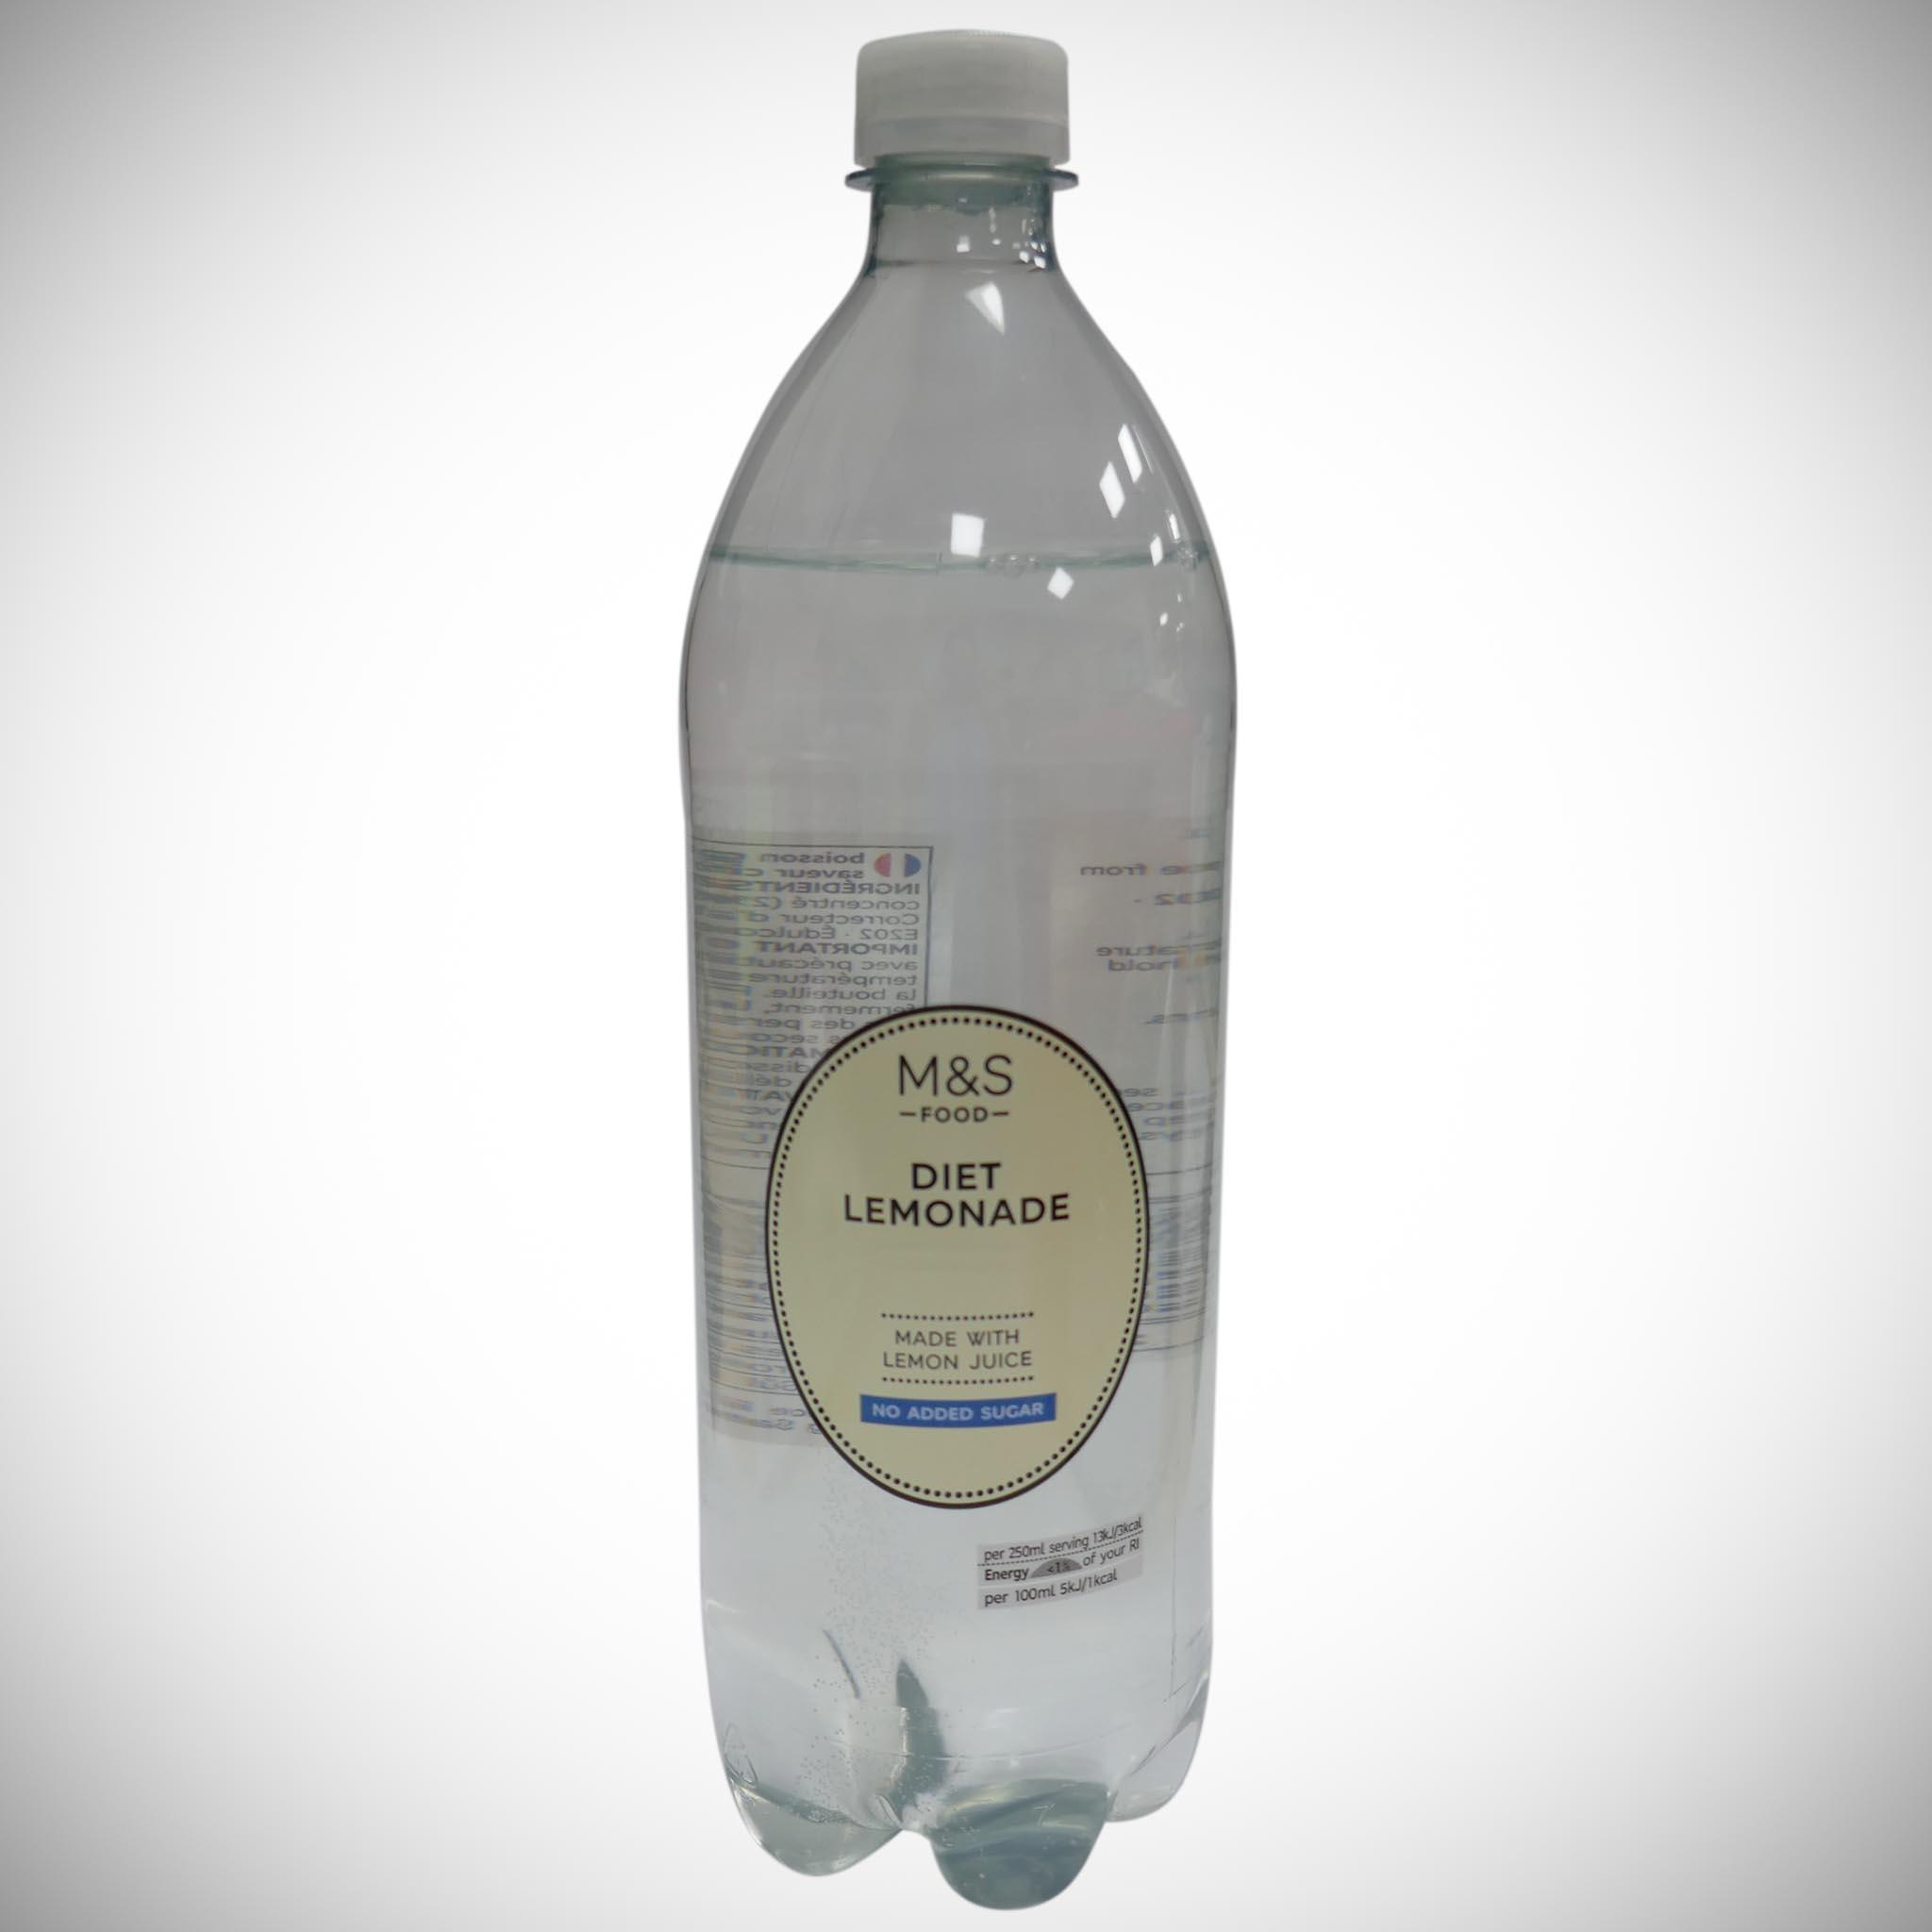 Diet Lemonade 1 litre